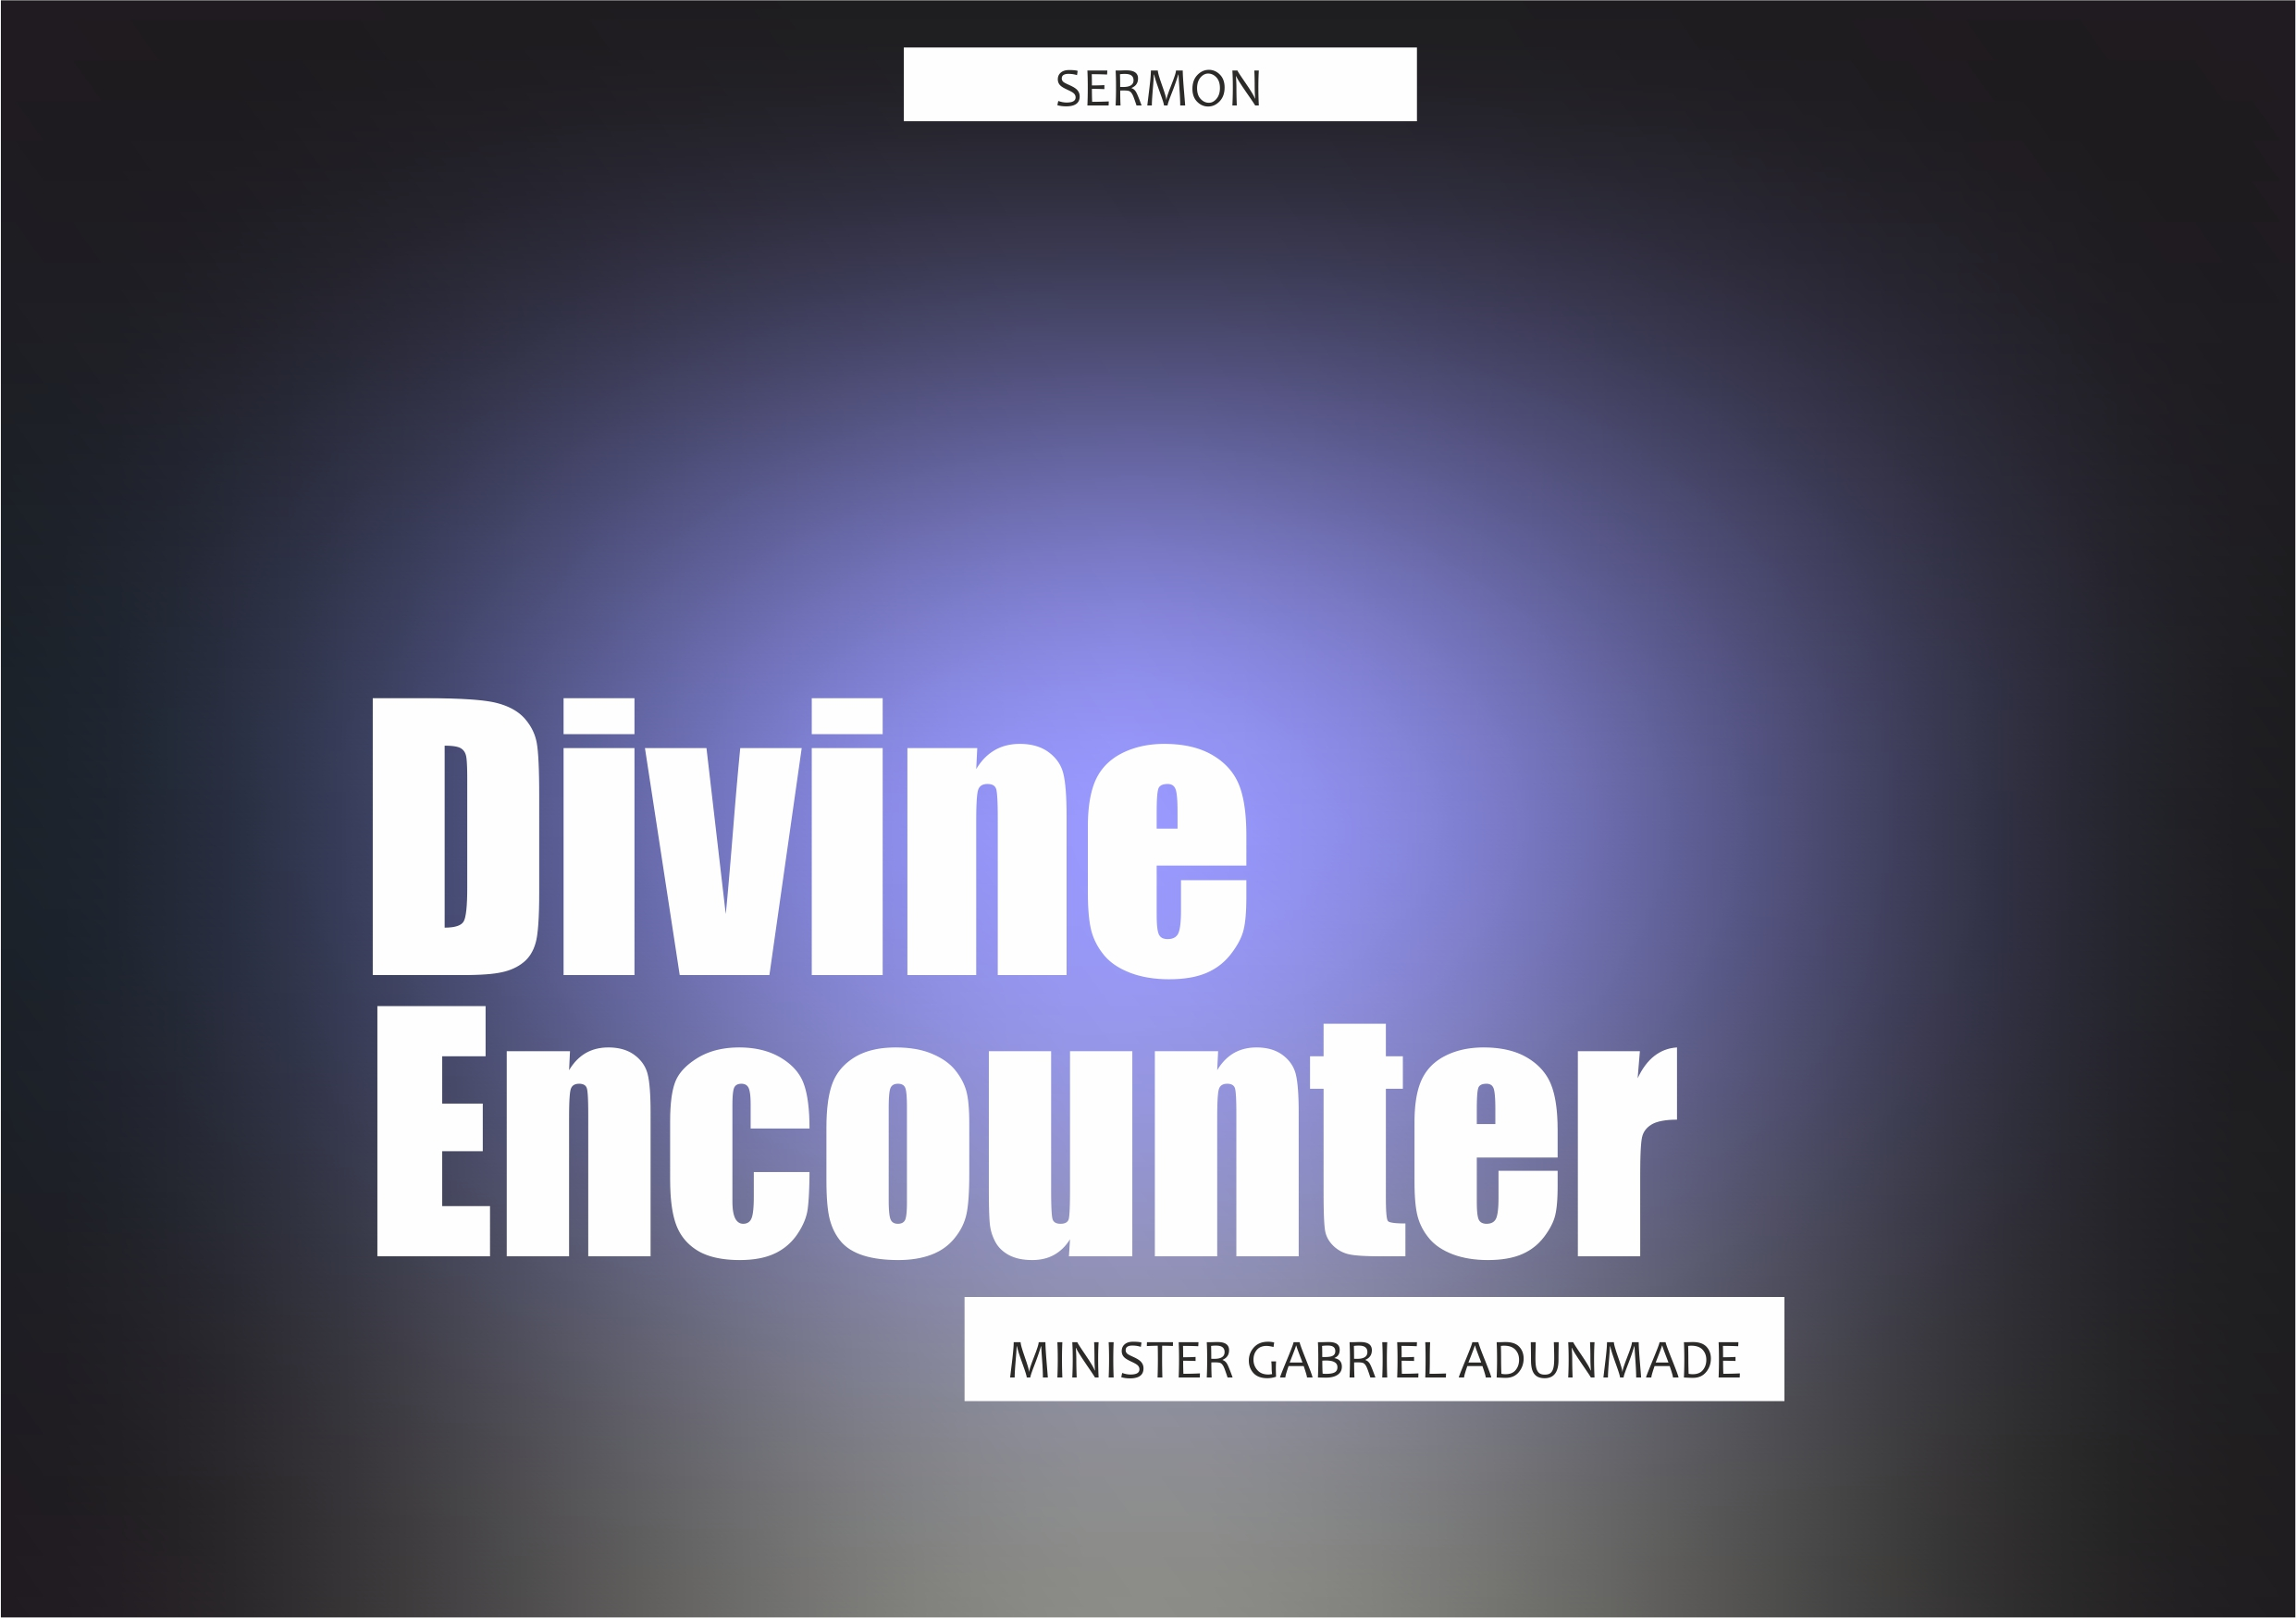 Divine Encounter, by Minister Gabriel Adunmade